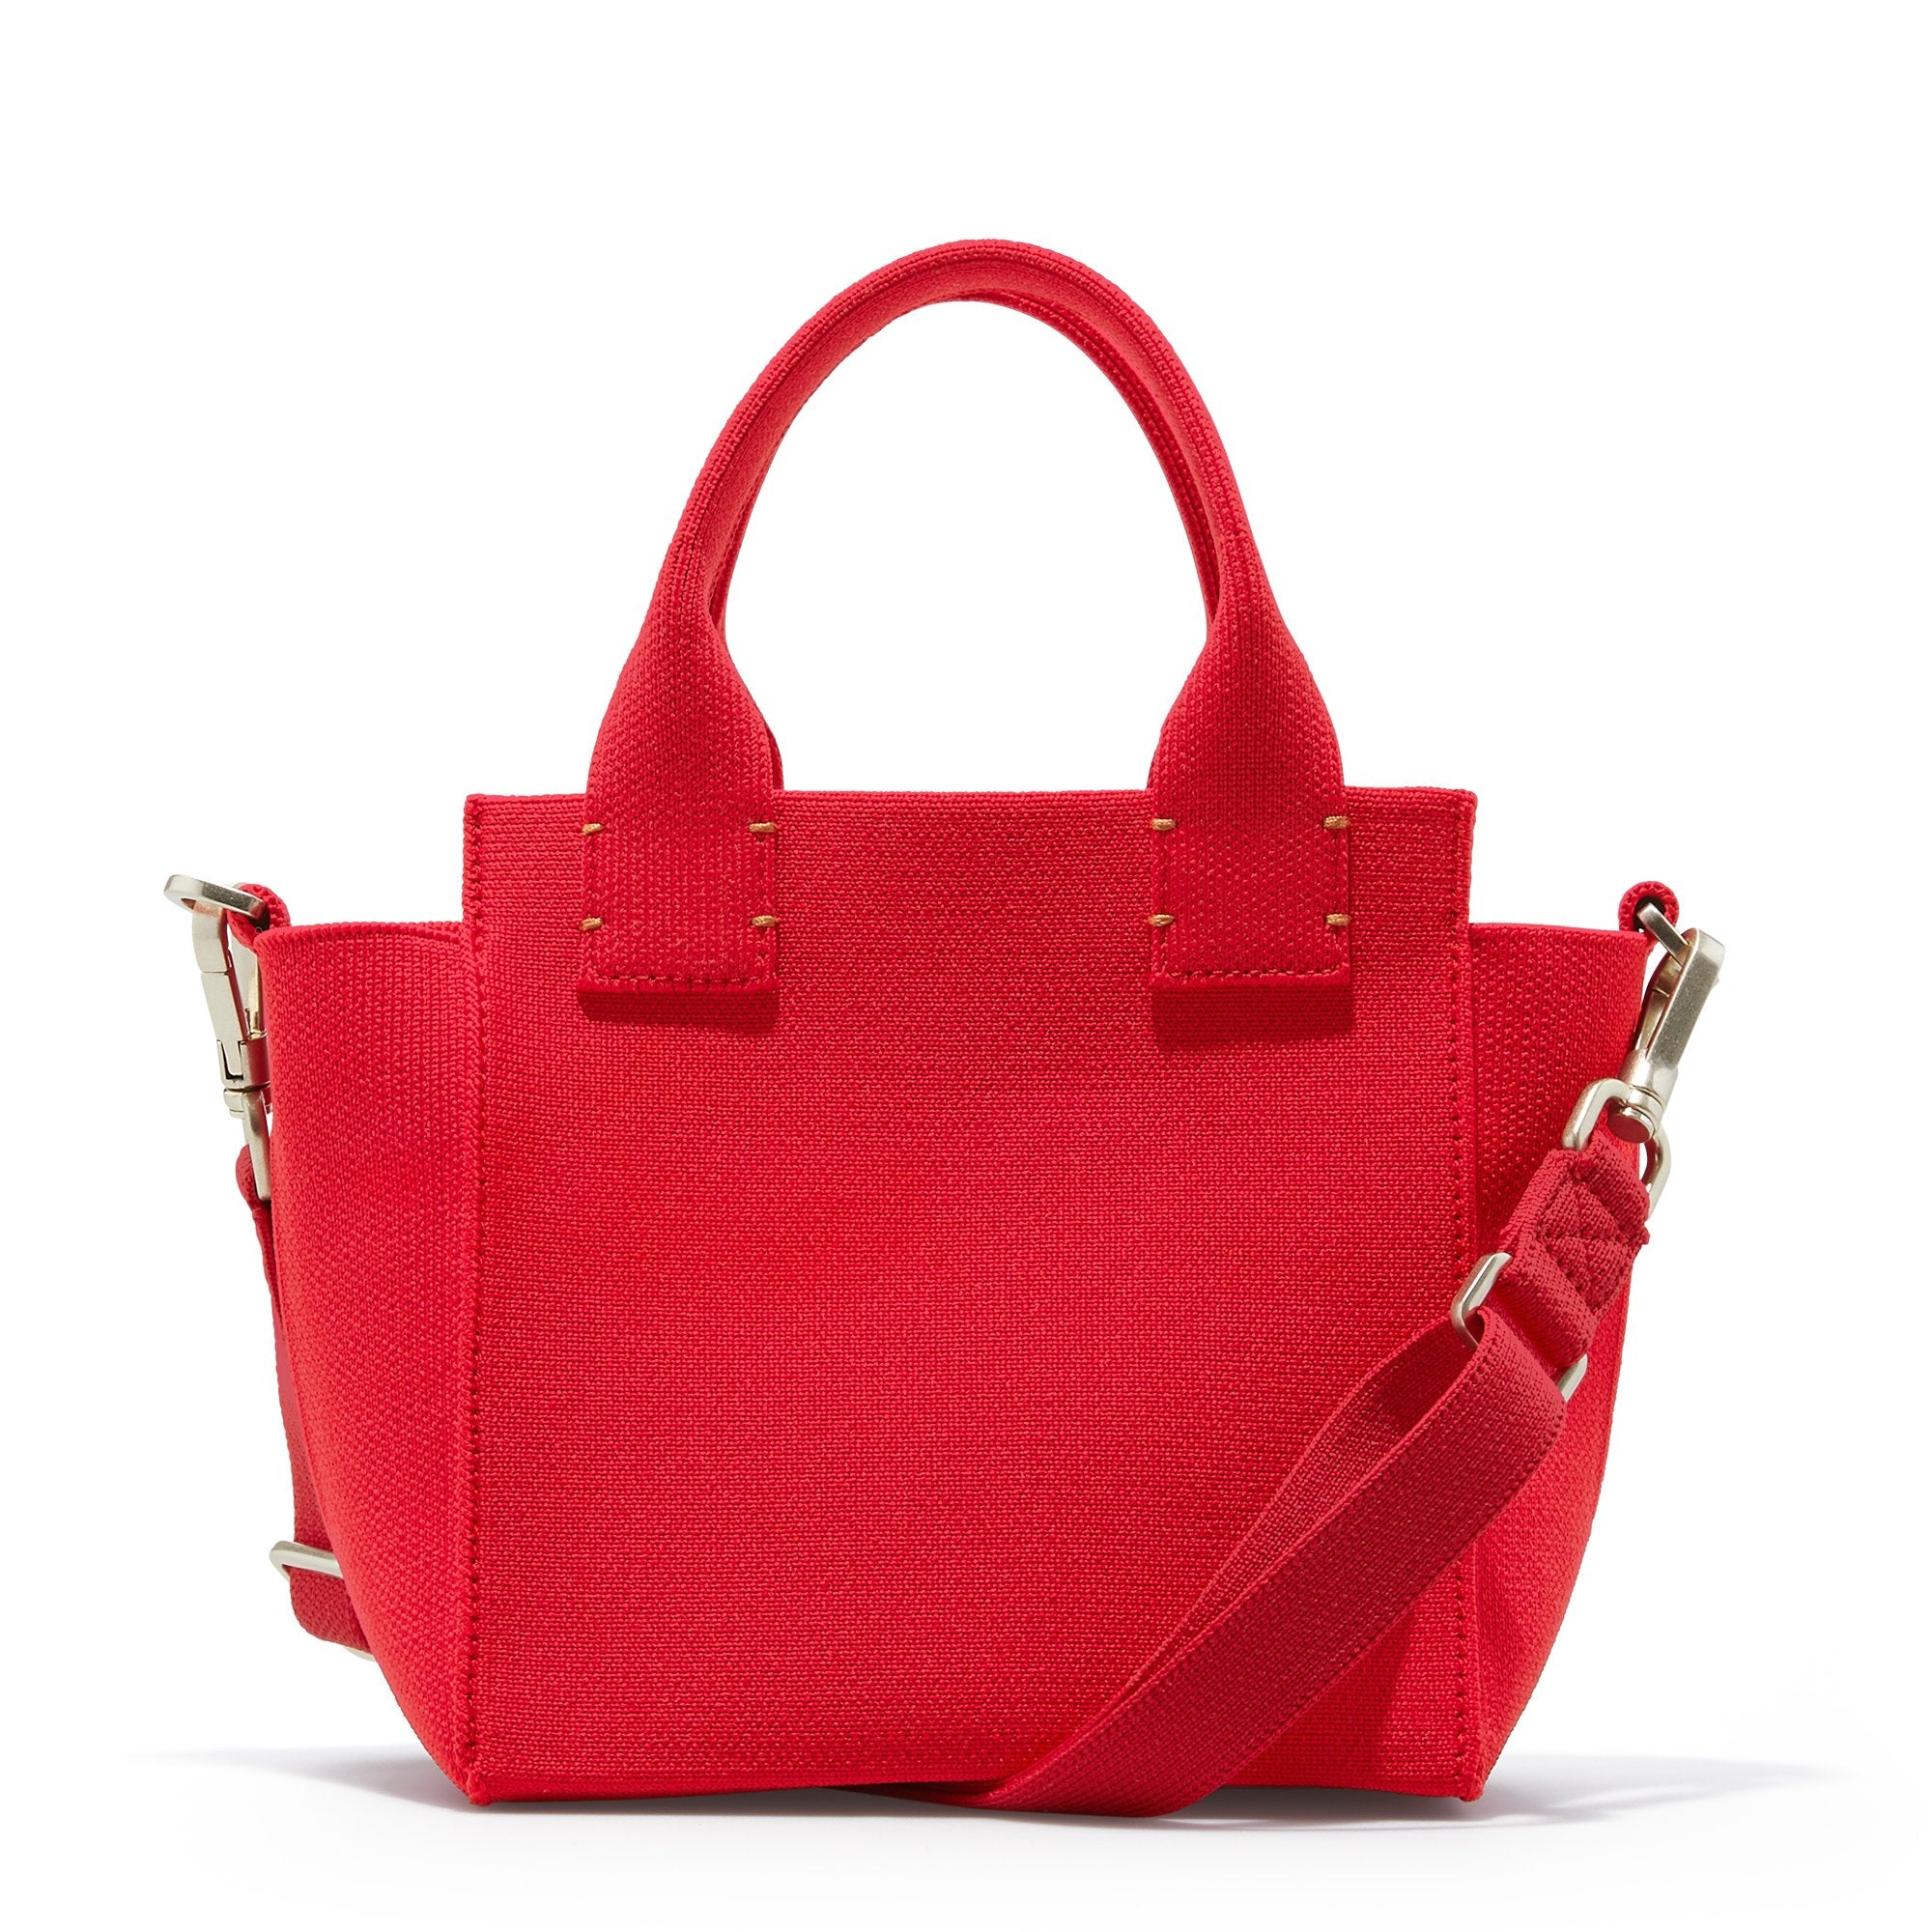 The Mini Handbag in Candy Apple shown from the back.